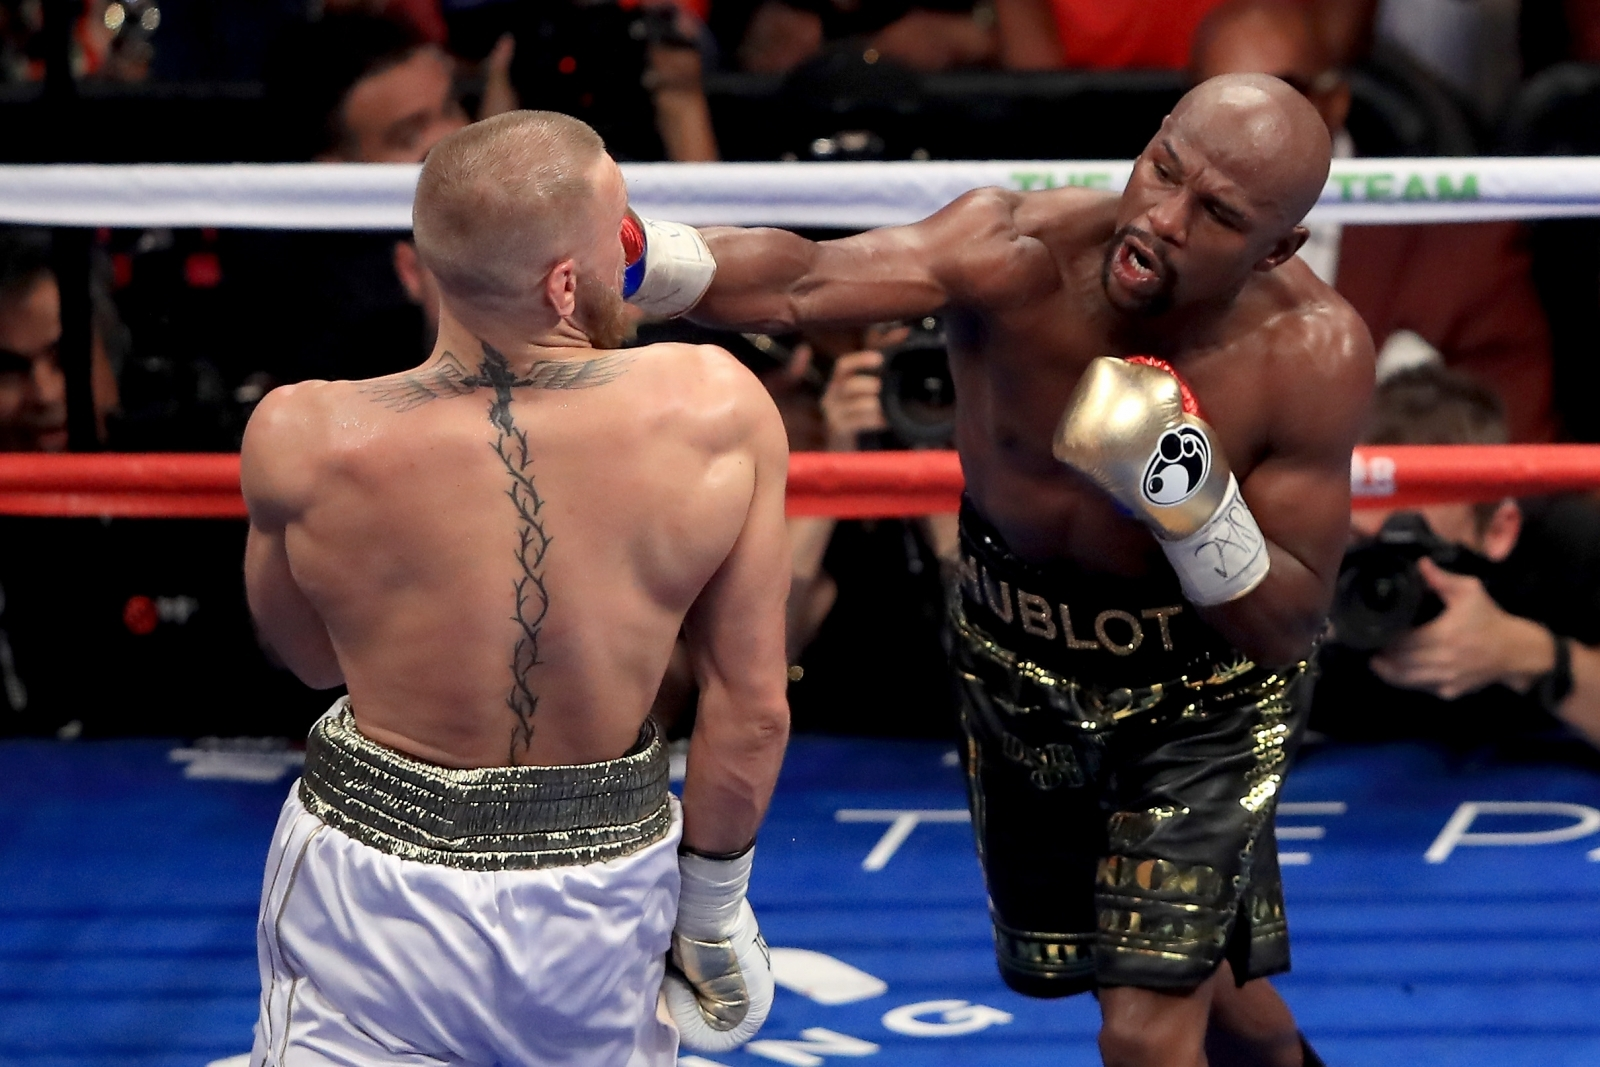 Floyd Mayweather vs Conor McGregor: Will the rematch happen this year?